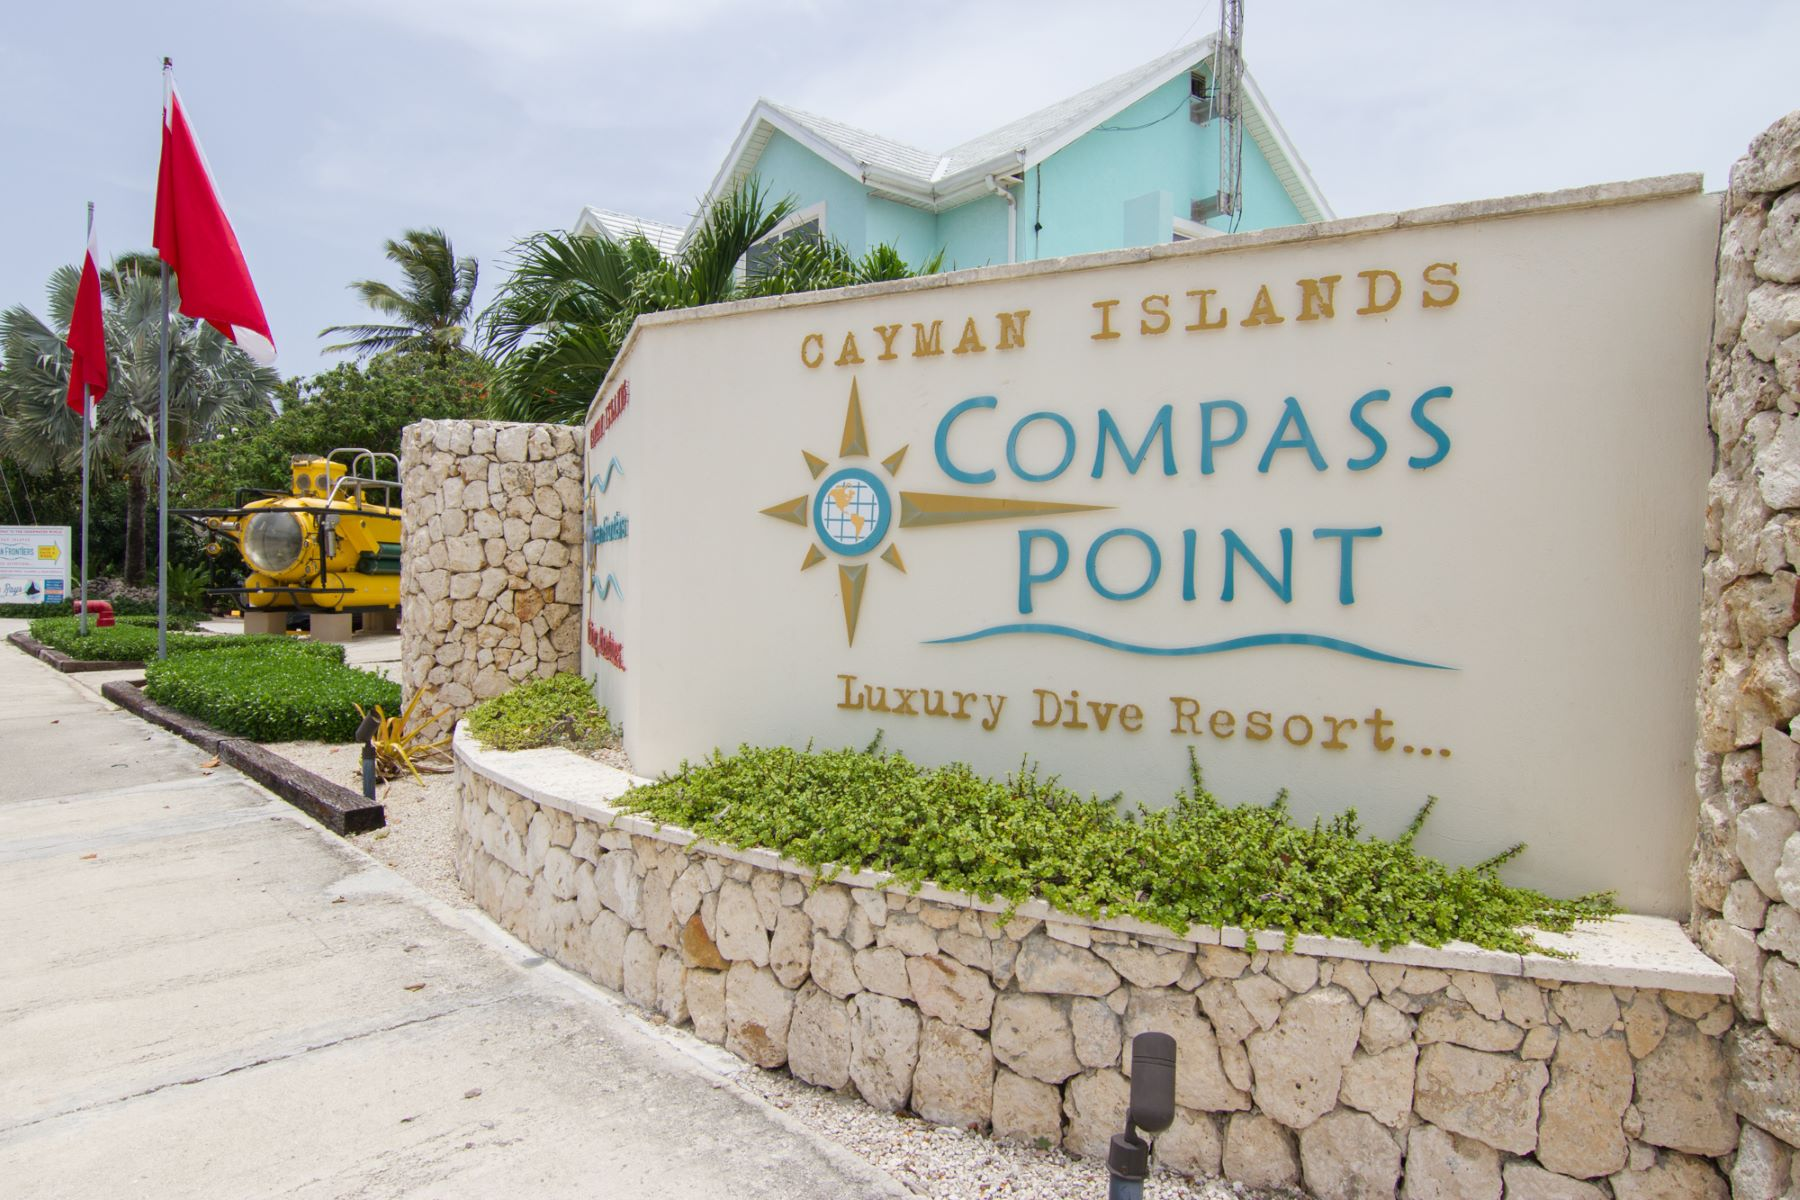 Additional photo for property listing at Compass Point Dive Resort Compass Point #316 342 Austin Conolly Dr East End, Gran Caimán KY1 Islas Caimán